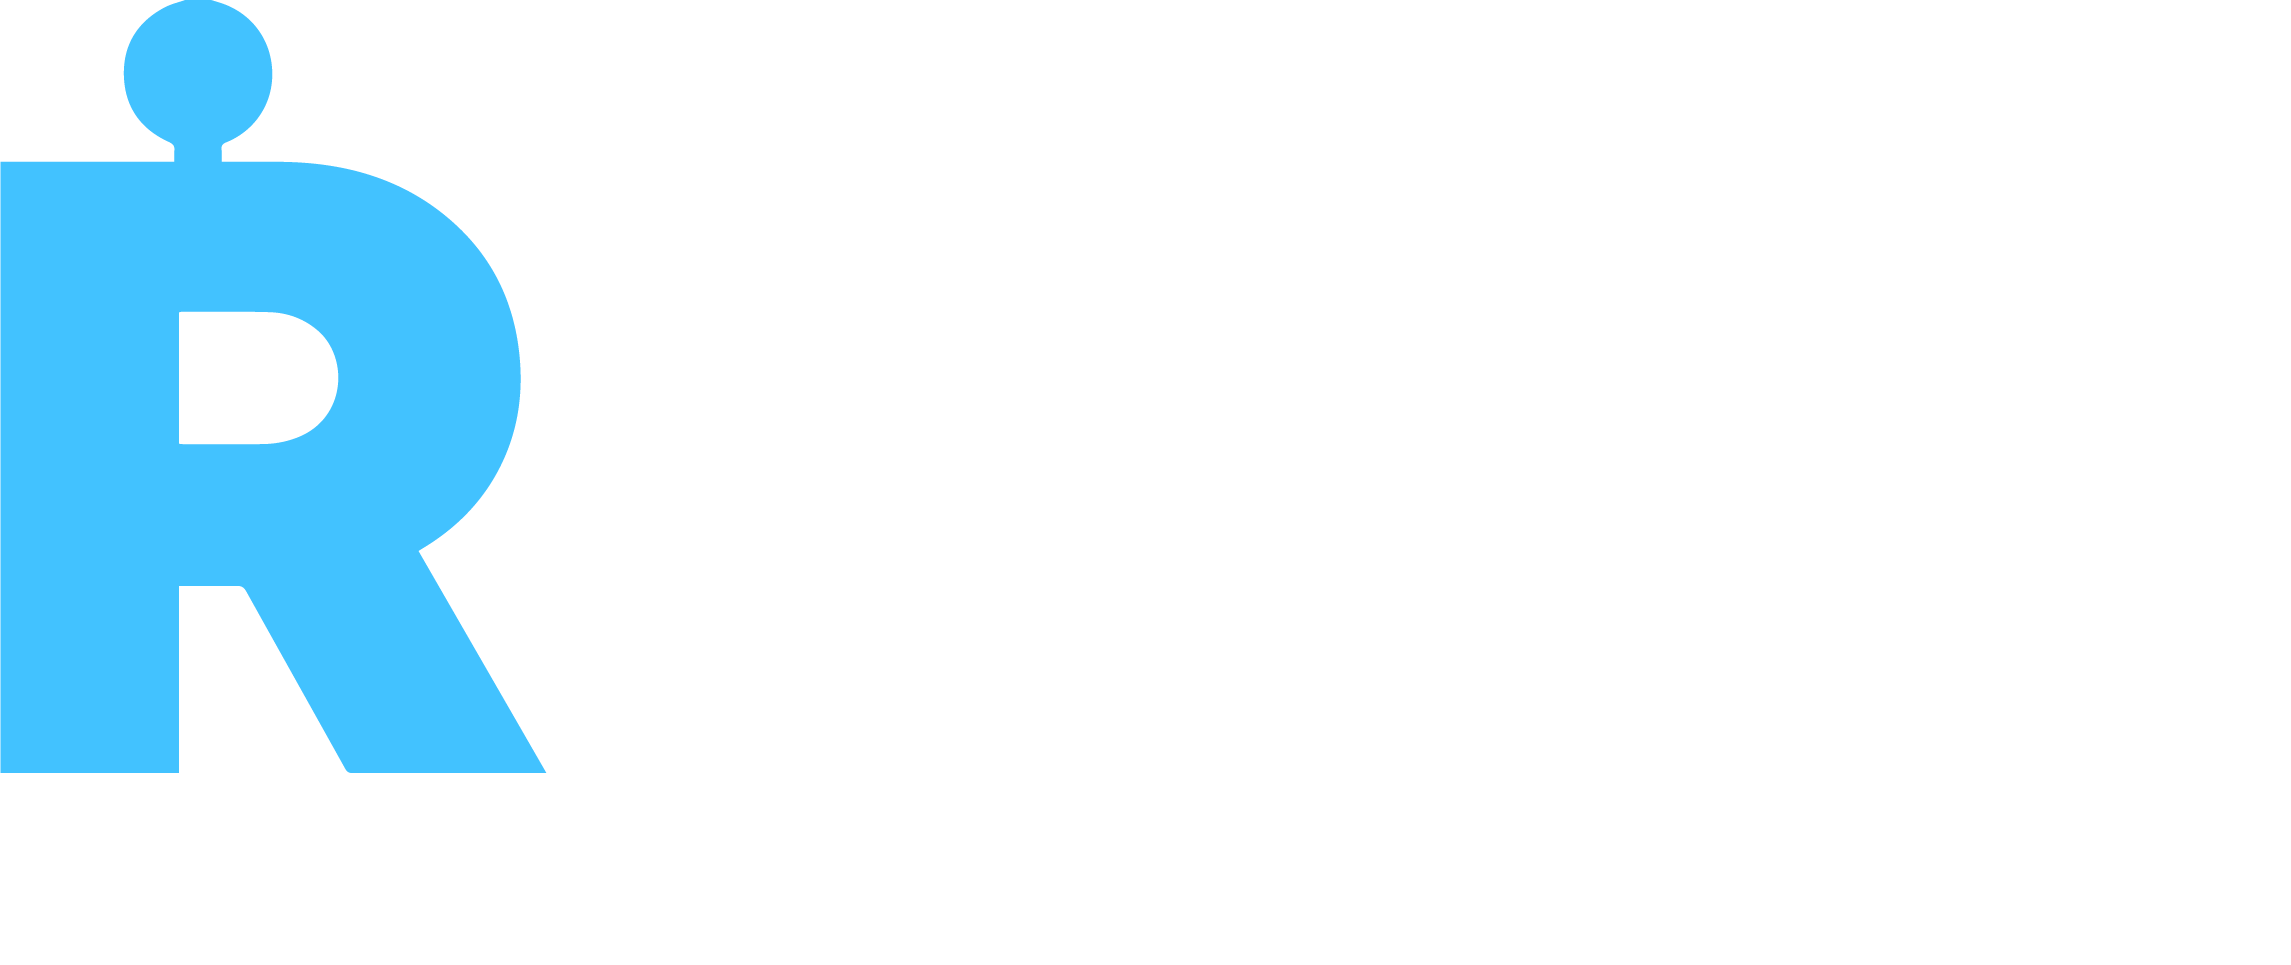 Roby logo